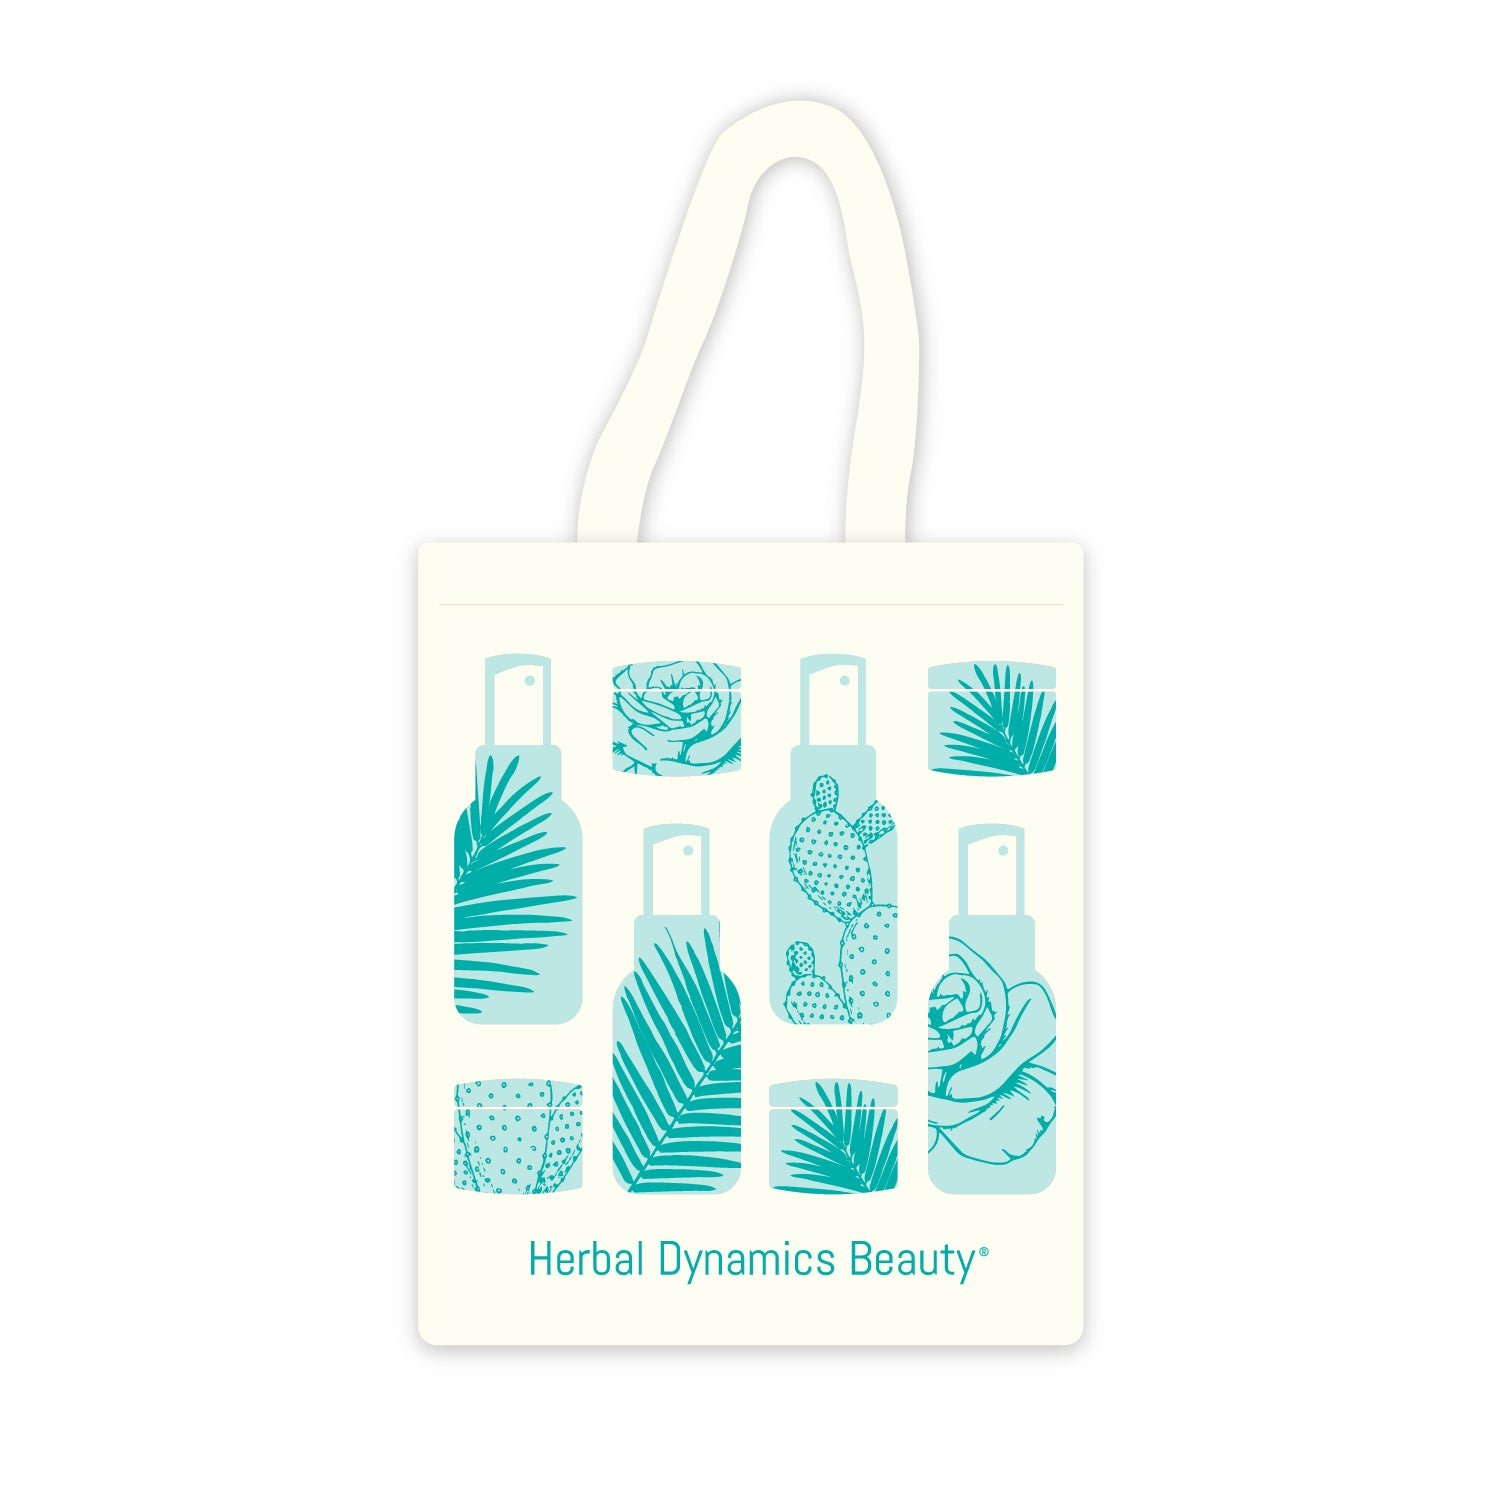 Herbal Dynamics Beauty Tote Bag 12